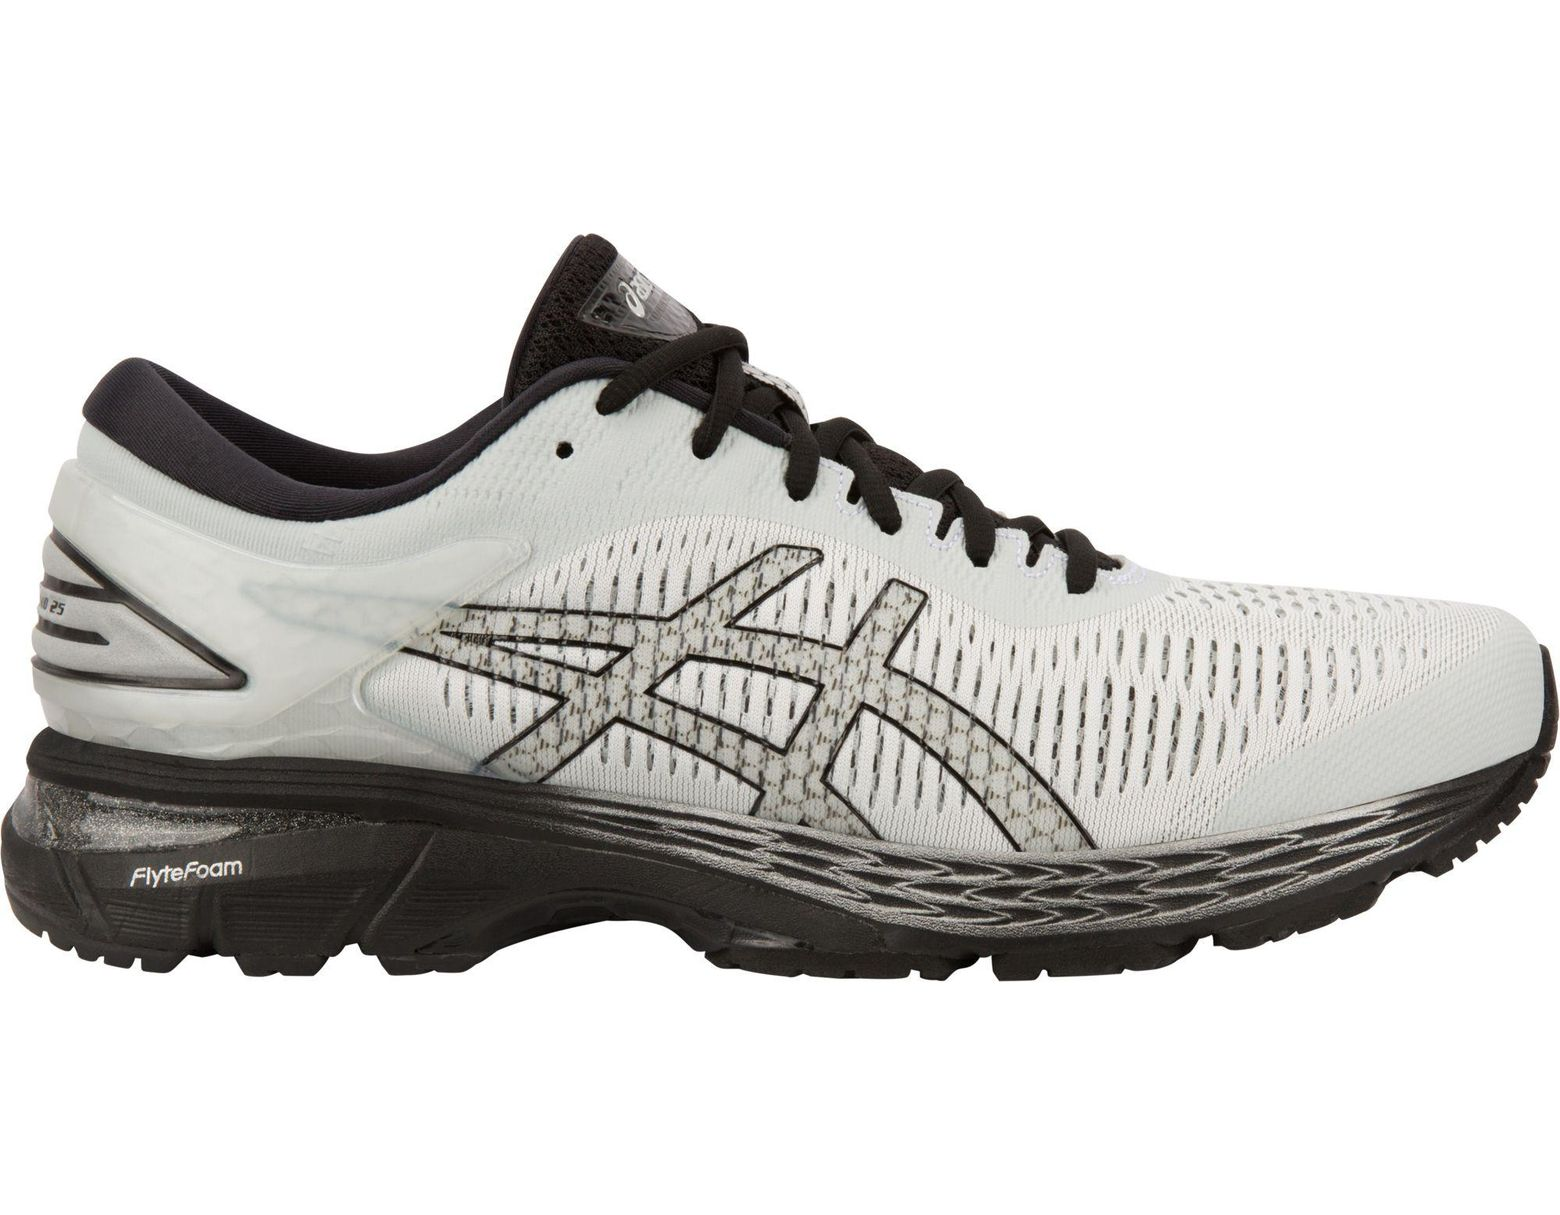 b1abaed10 Asics Gel-kayano 25 Running Shoes in Black for Men - Lyst